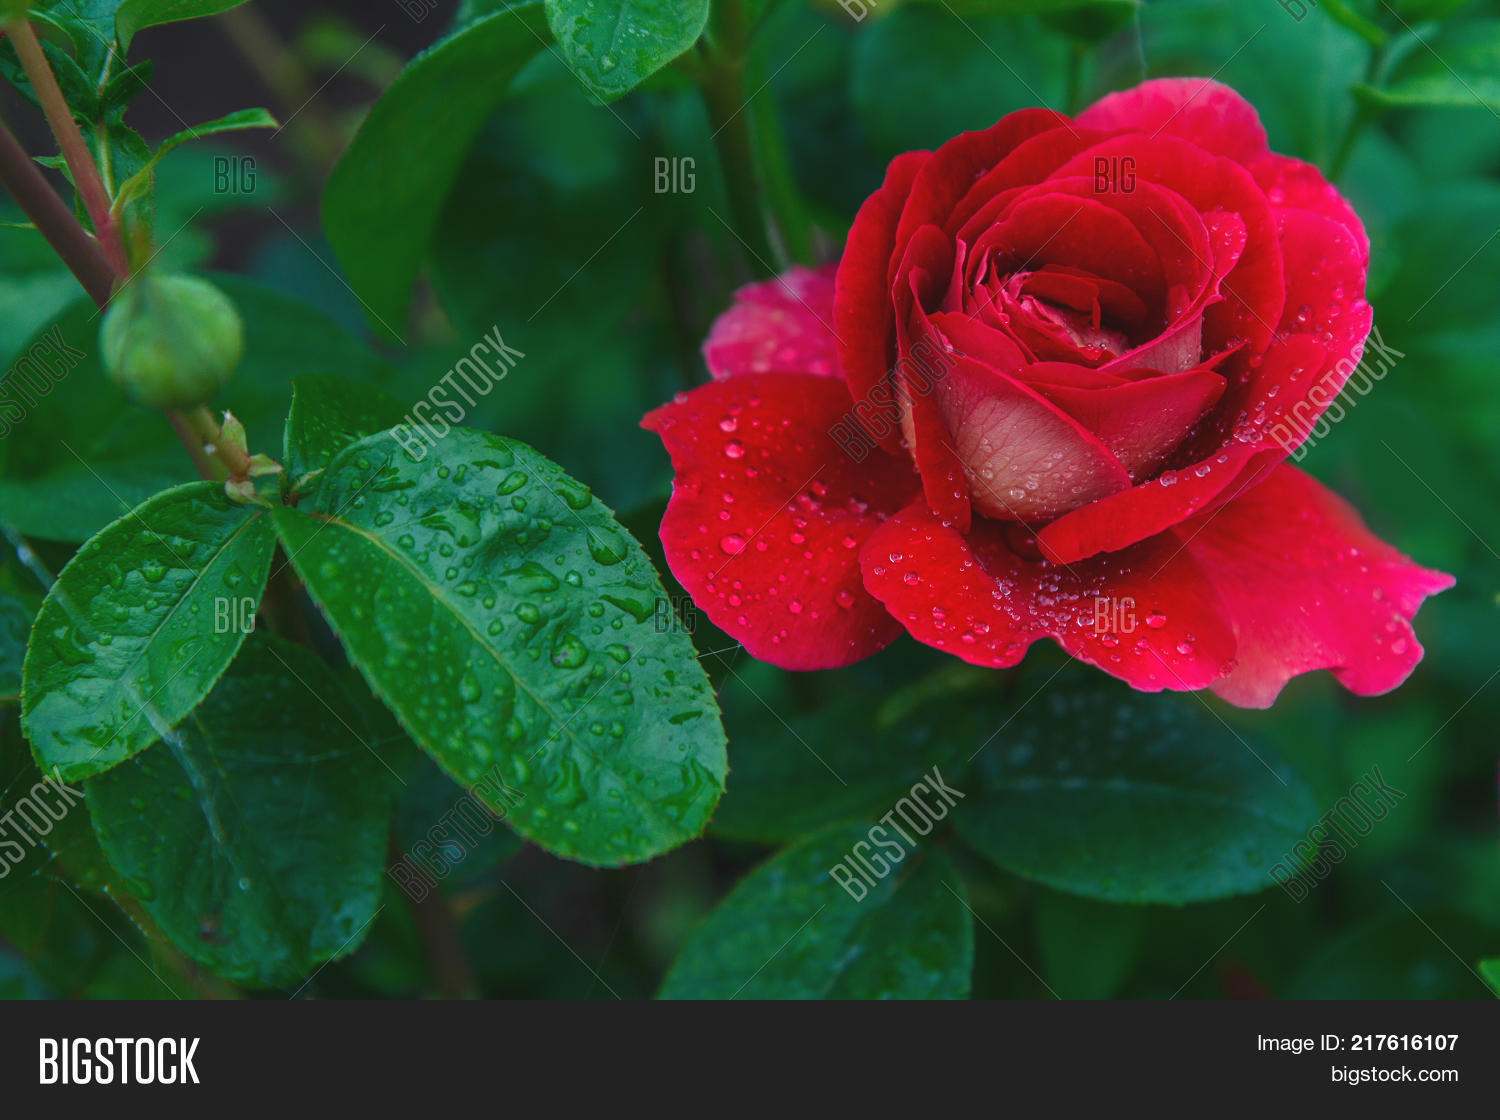 Favorite flowers very image photo free trial bigstock favorite flowers a very beautiful rose beautiful red rose with drops of dew izmirmasajfo